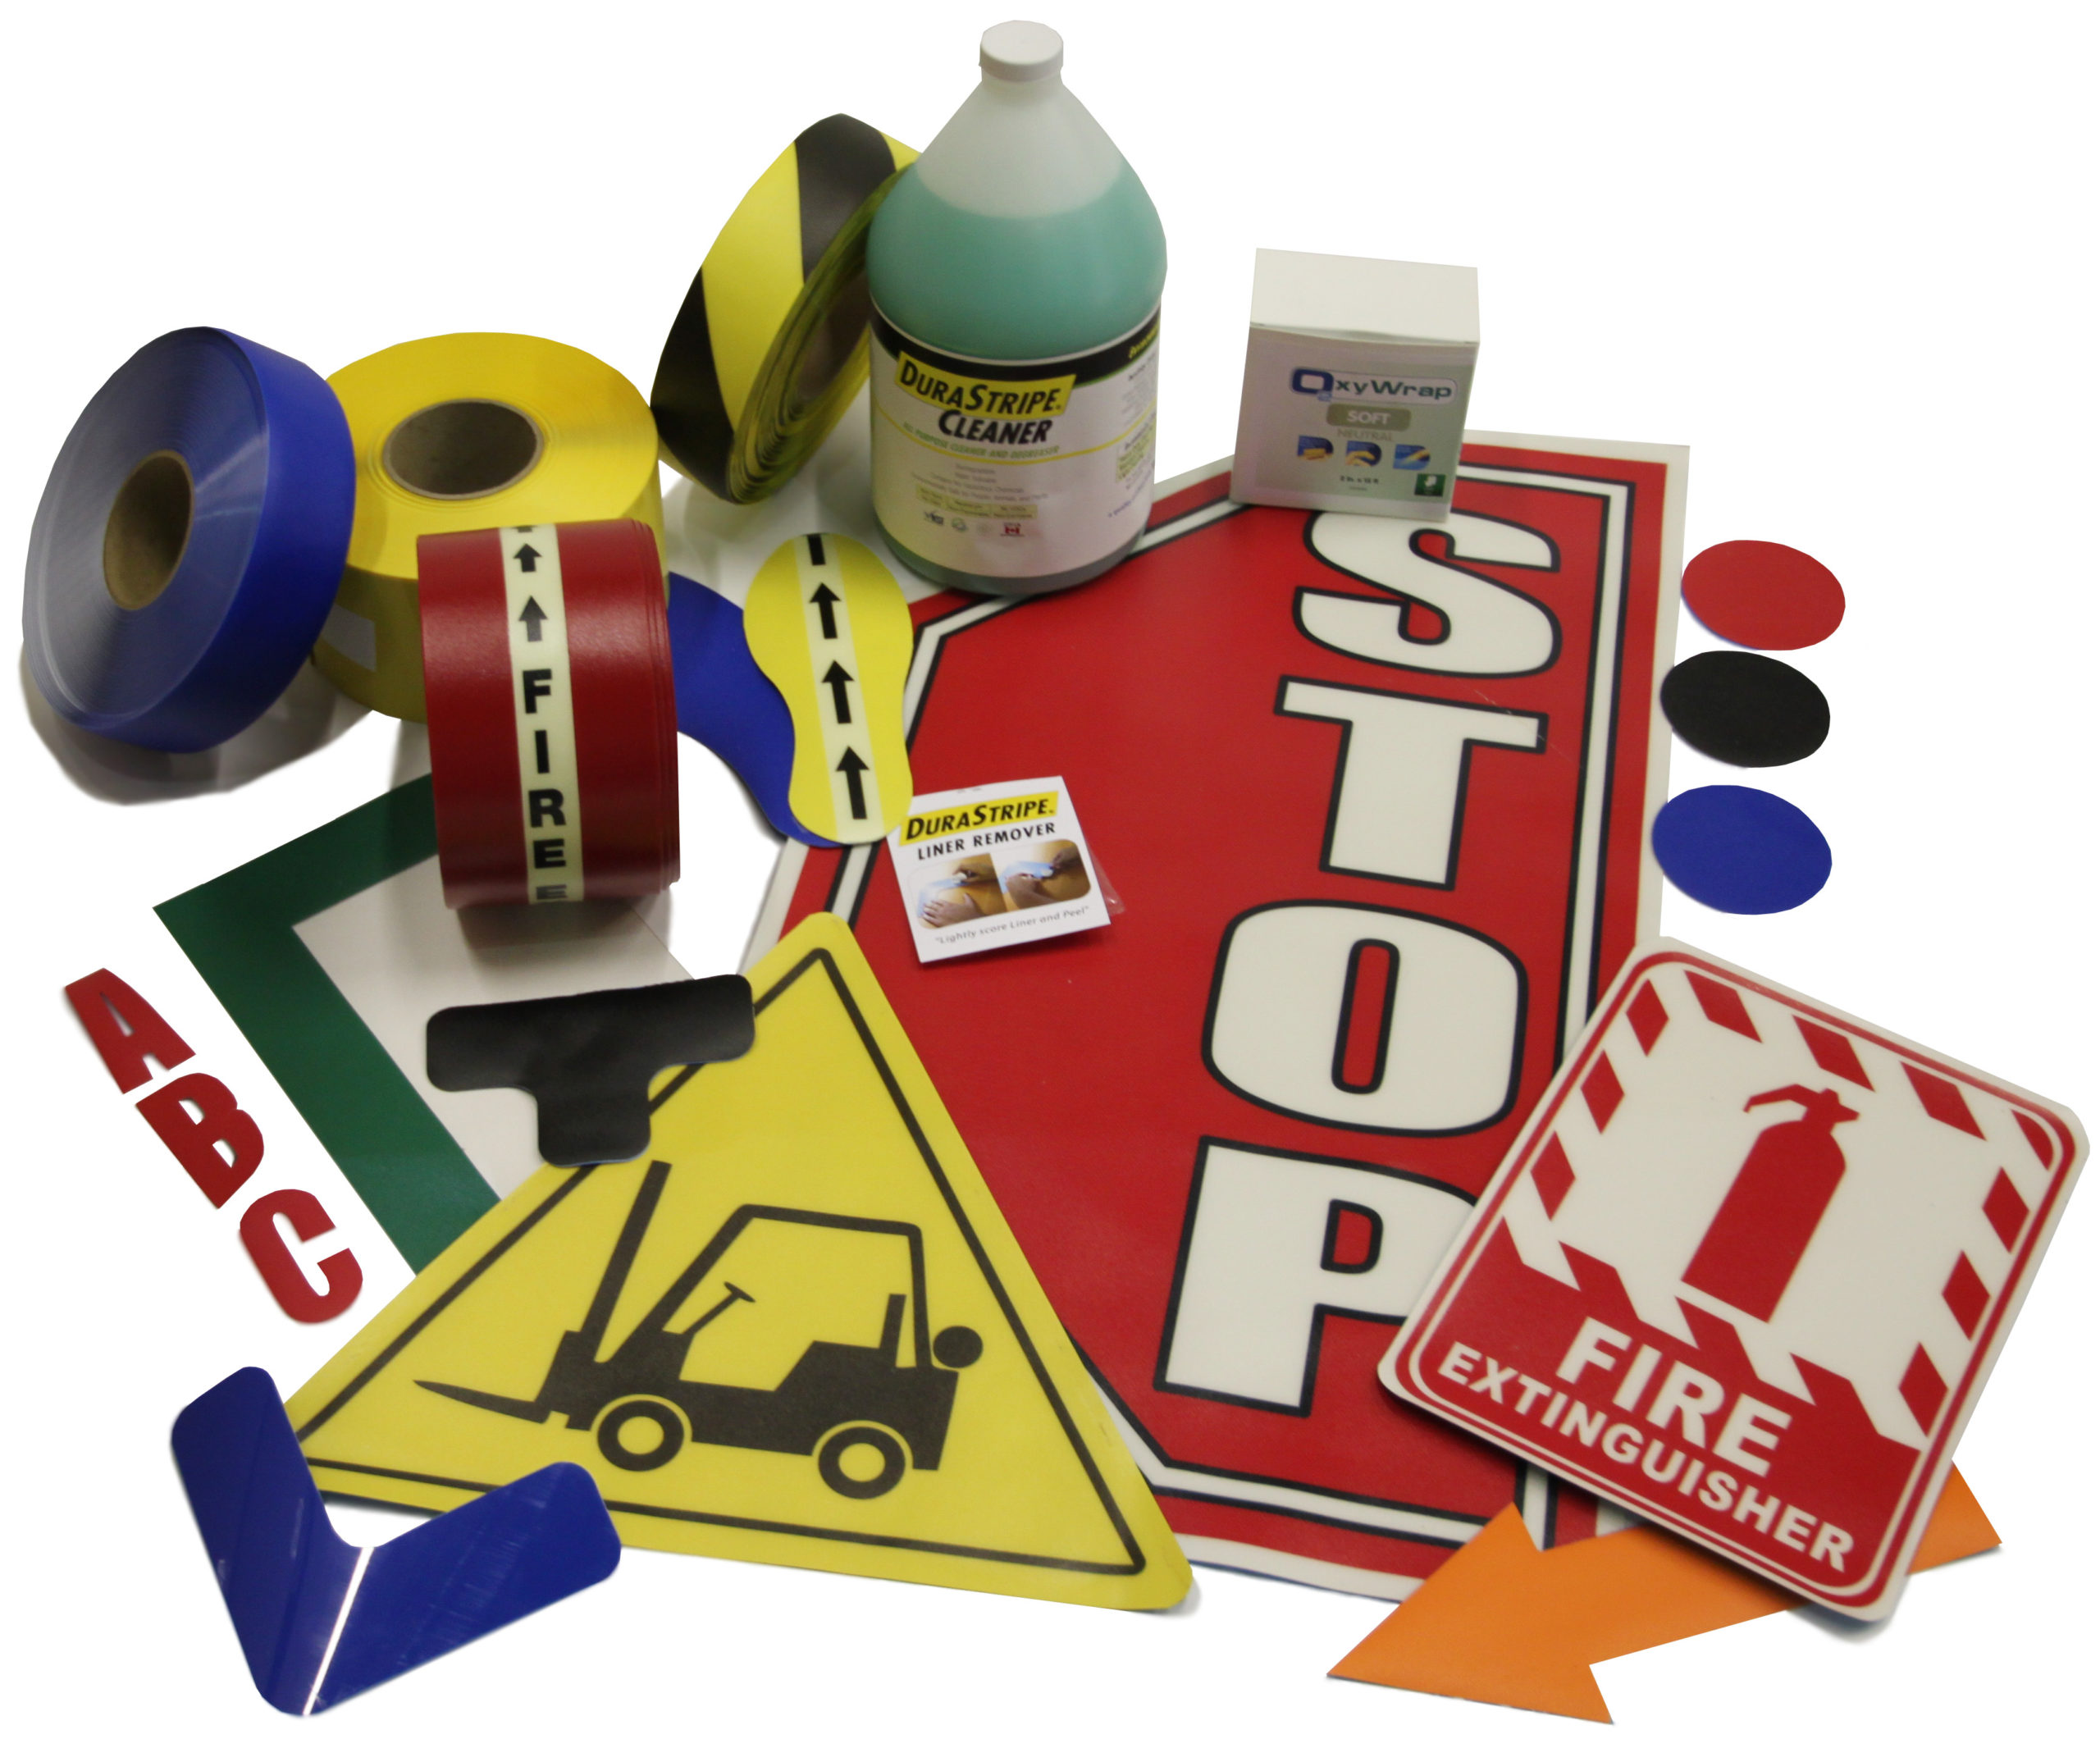 Signage and floor-marking Starter Kit